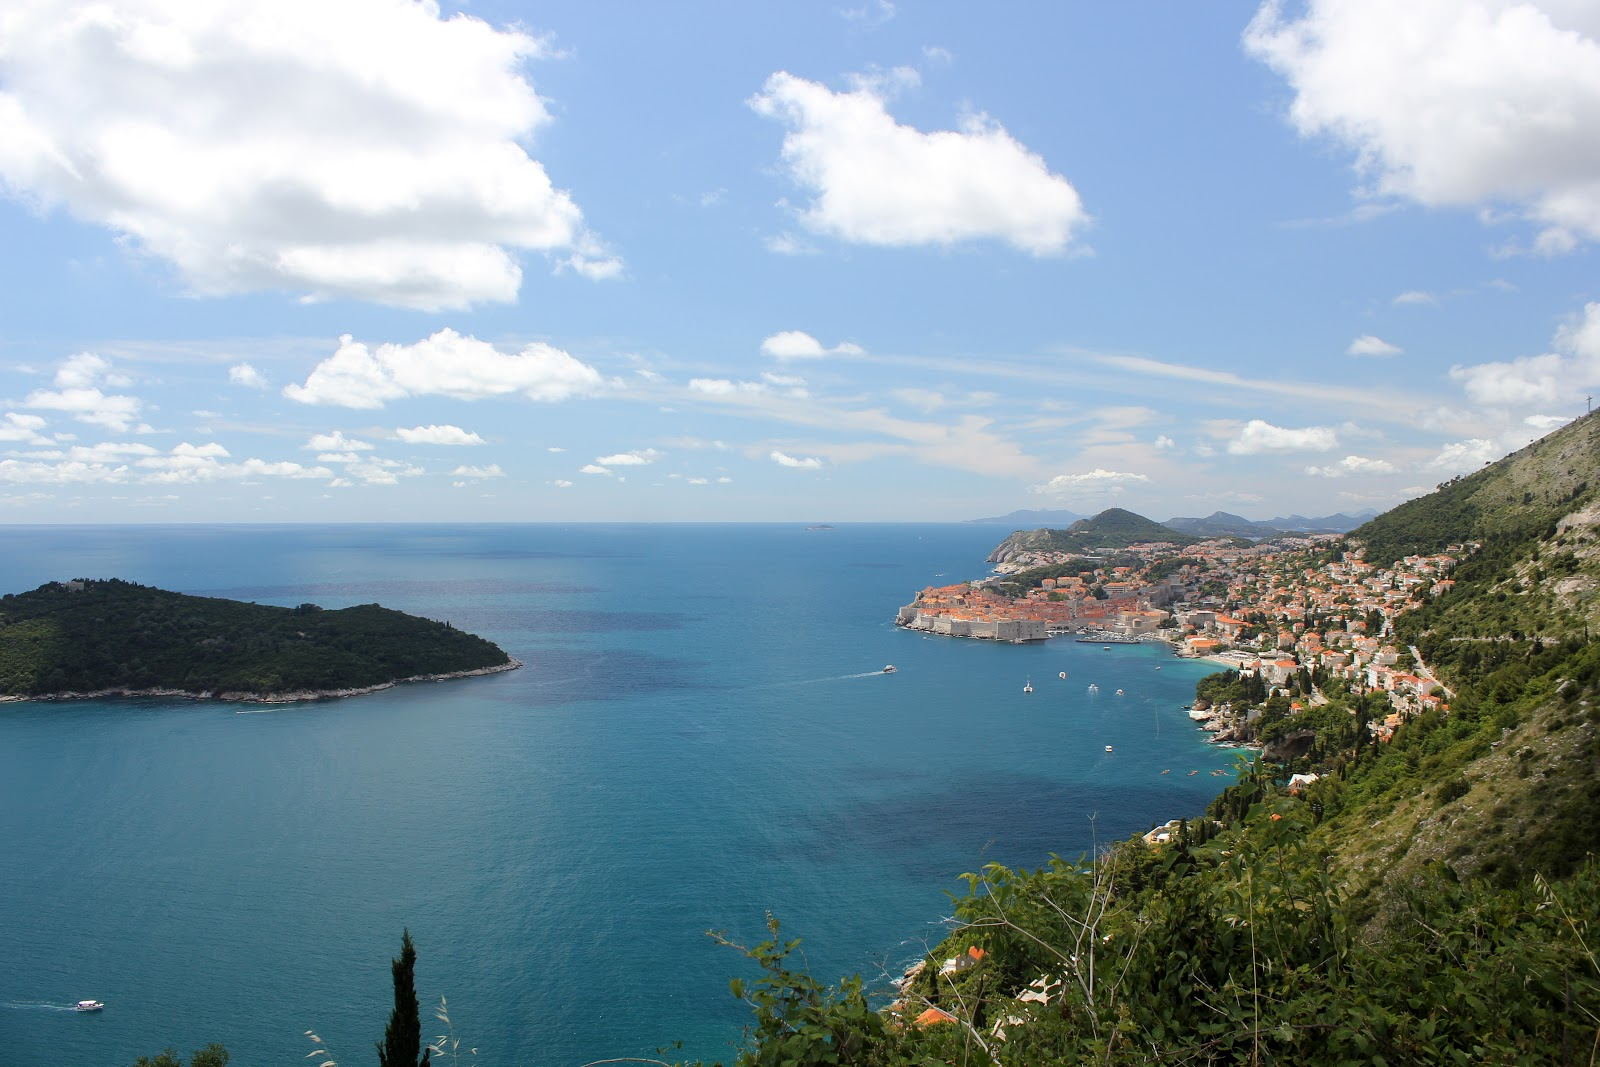 Looking North towards Dubrovnik